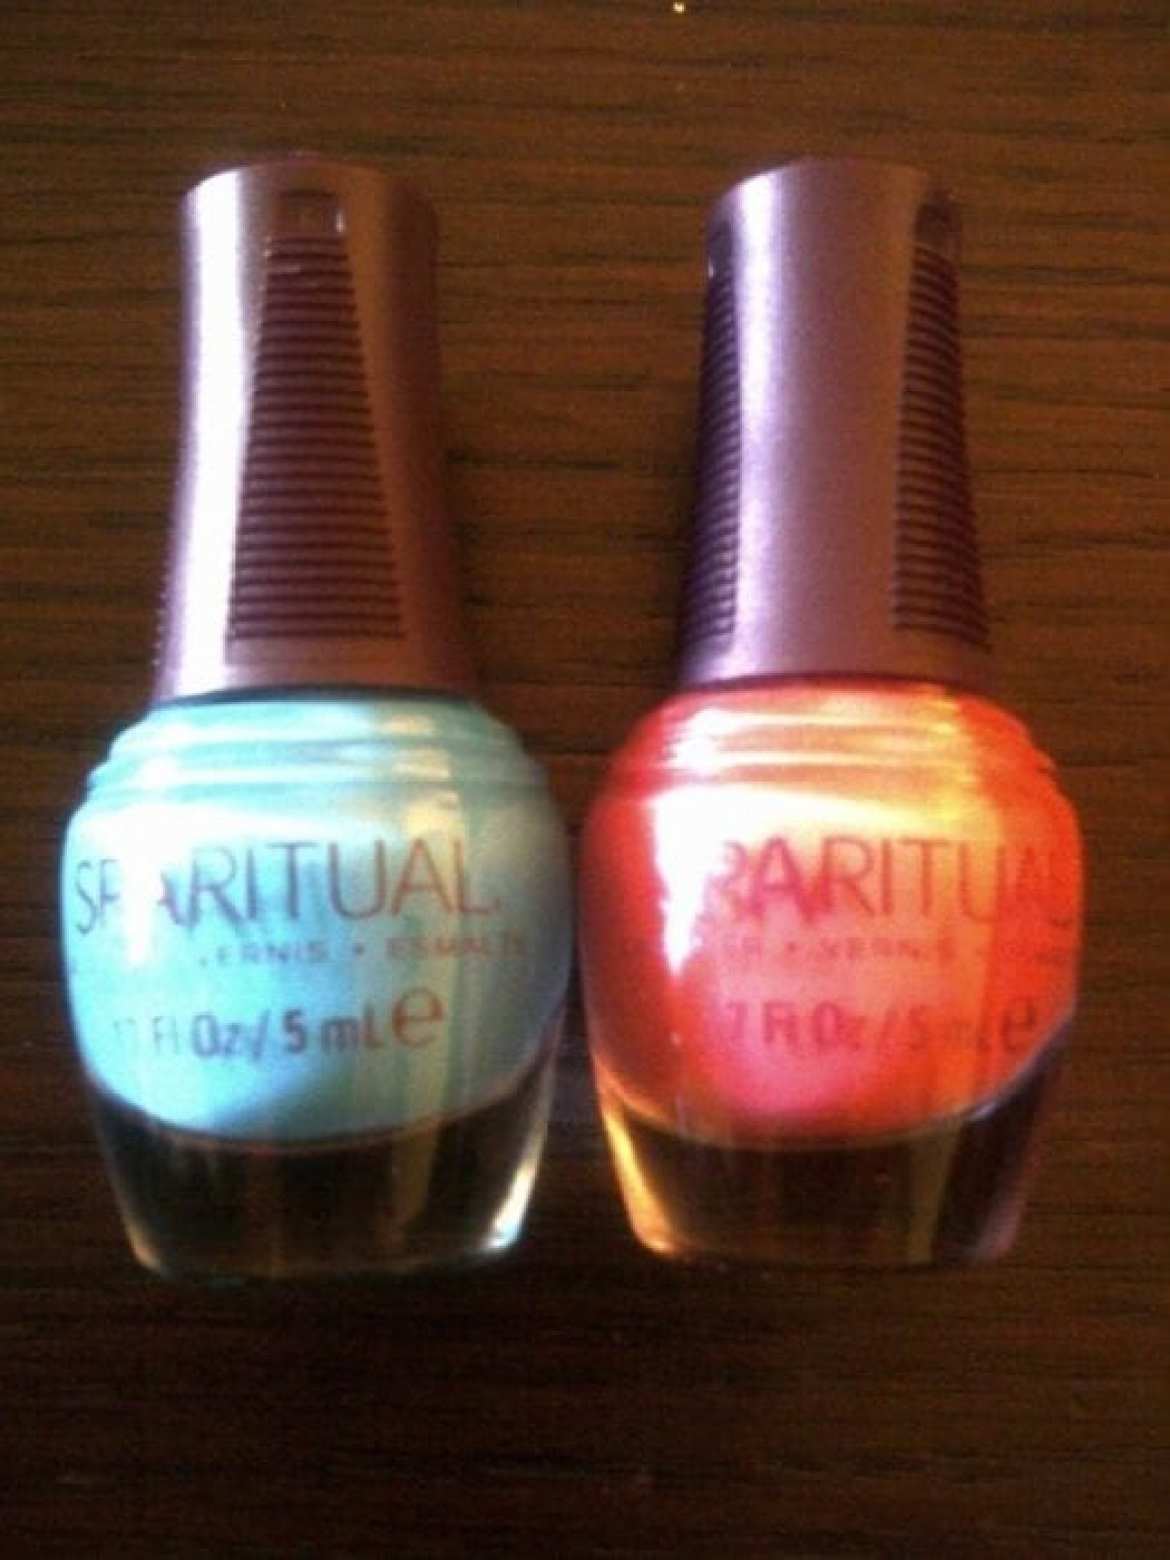 Sparitual Evolve Swatches Review: Water Collection Spring/Summer